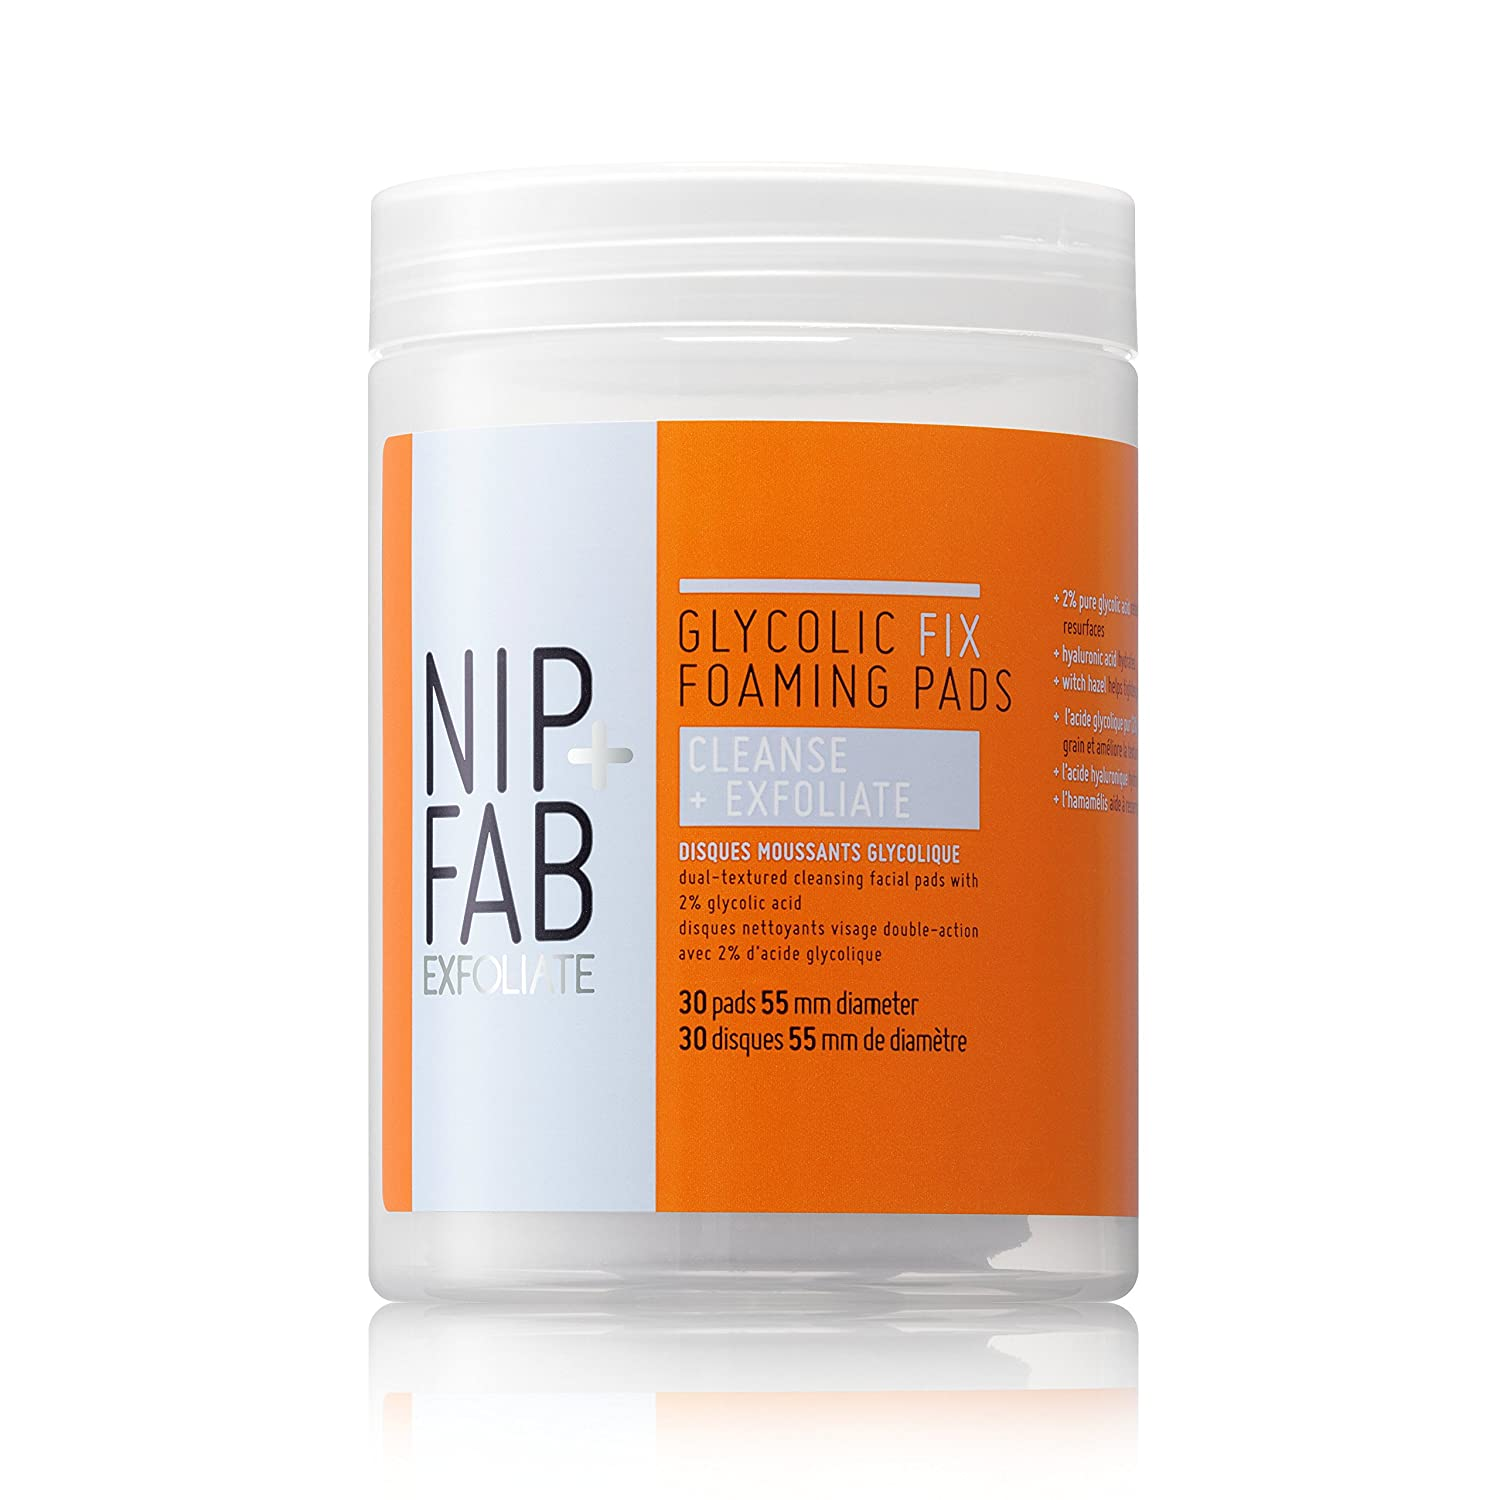 NIP+FAB Glycolic Fix Foaming Pads NIP+FAB LTD SKGLYDPD30